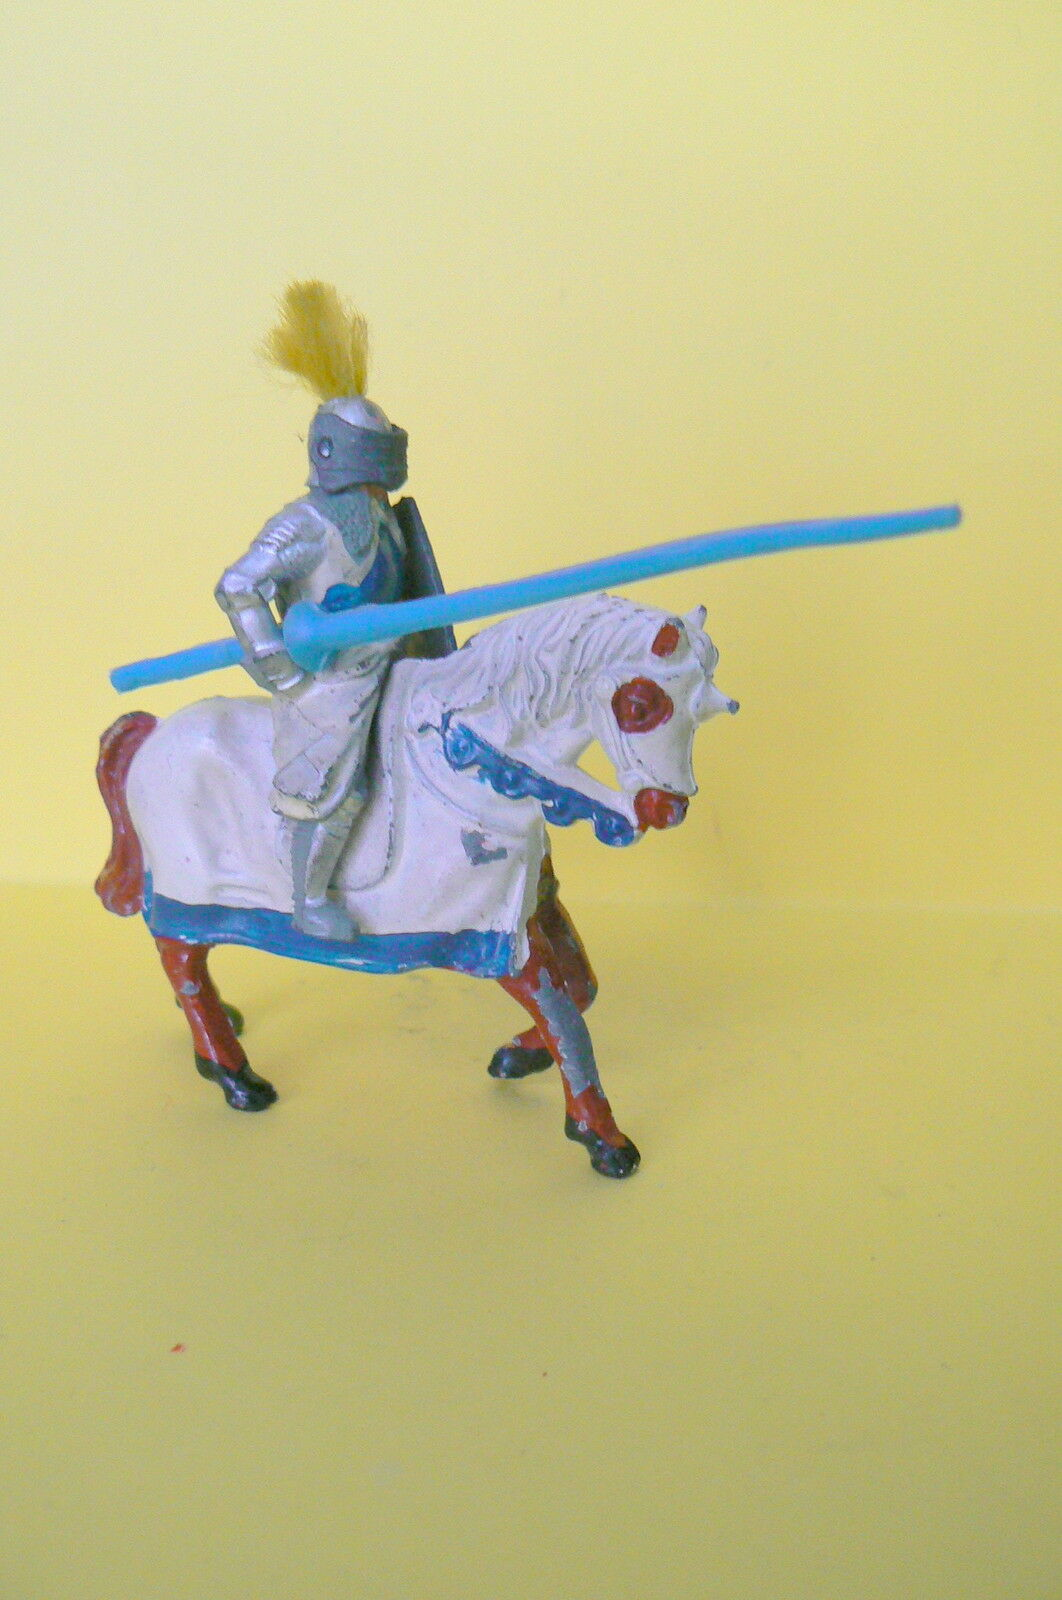 LEAD HOLLOW   BRAND TIMPO TOYS   VERY NICE KNIGHT HAS HORSE